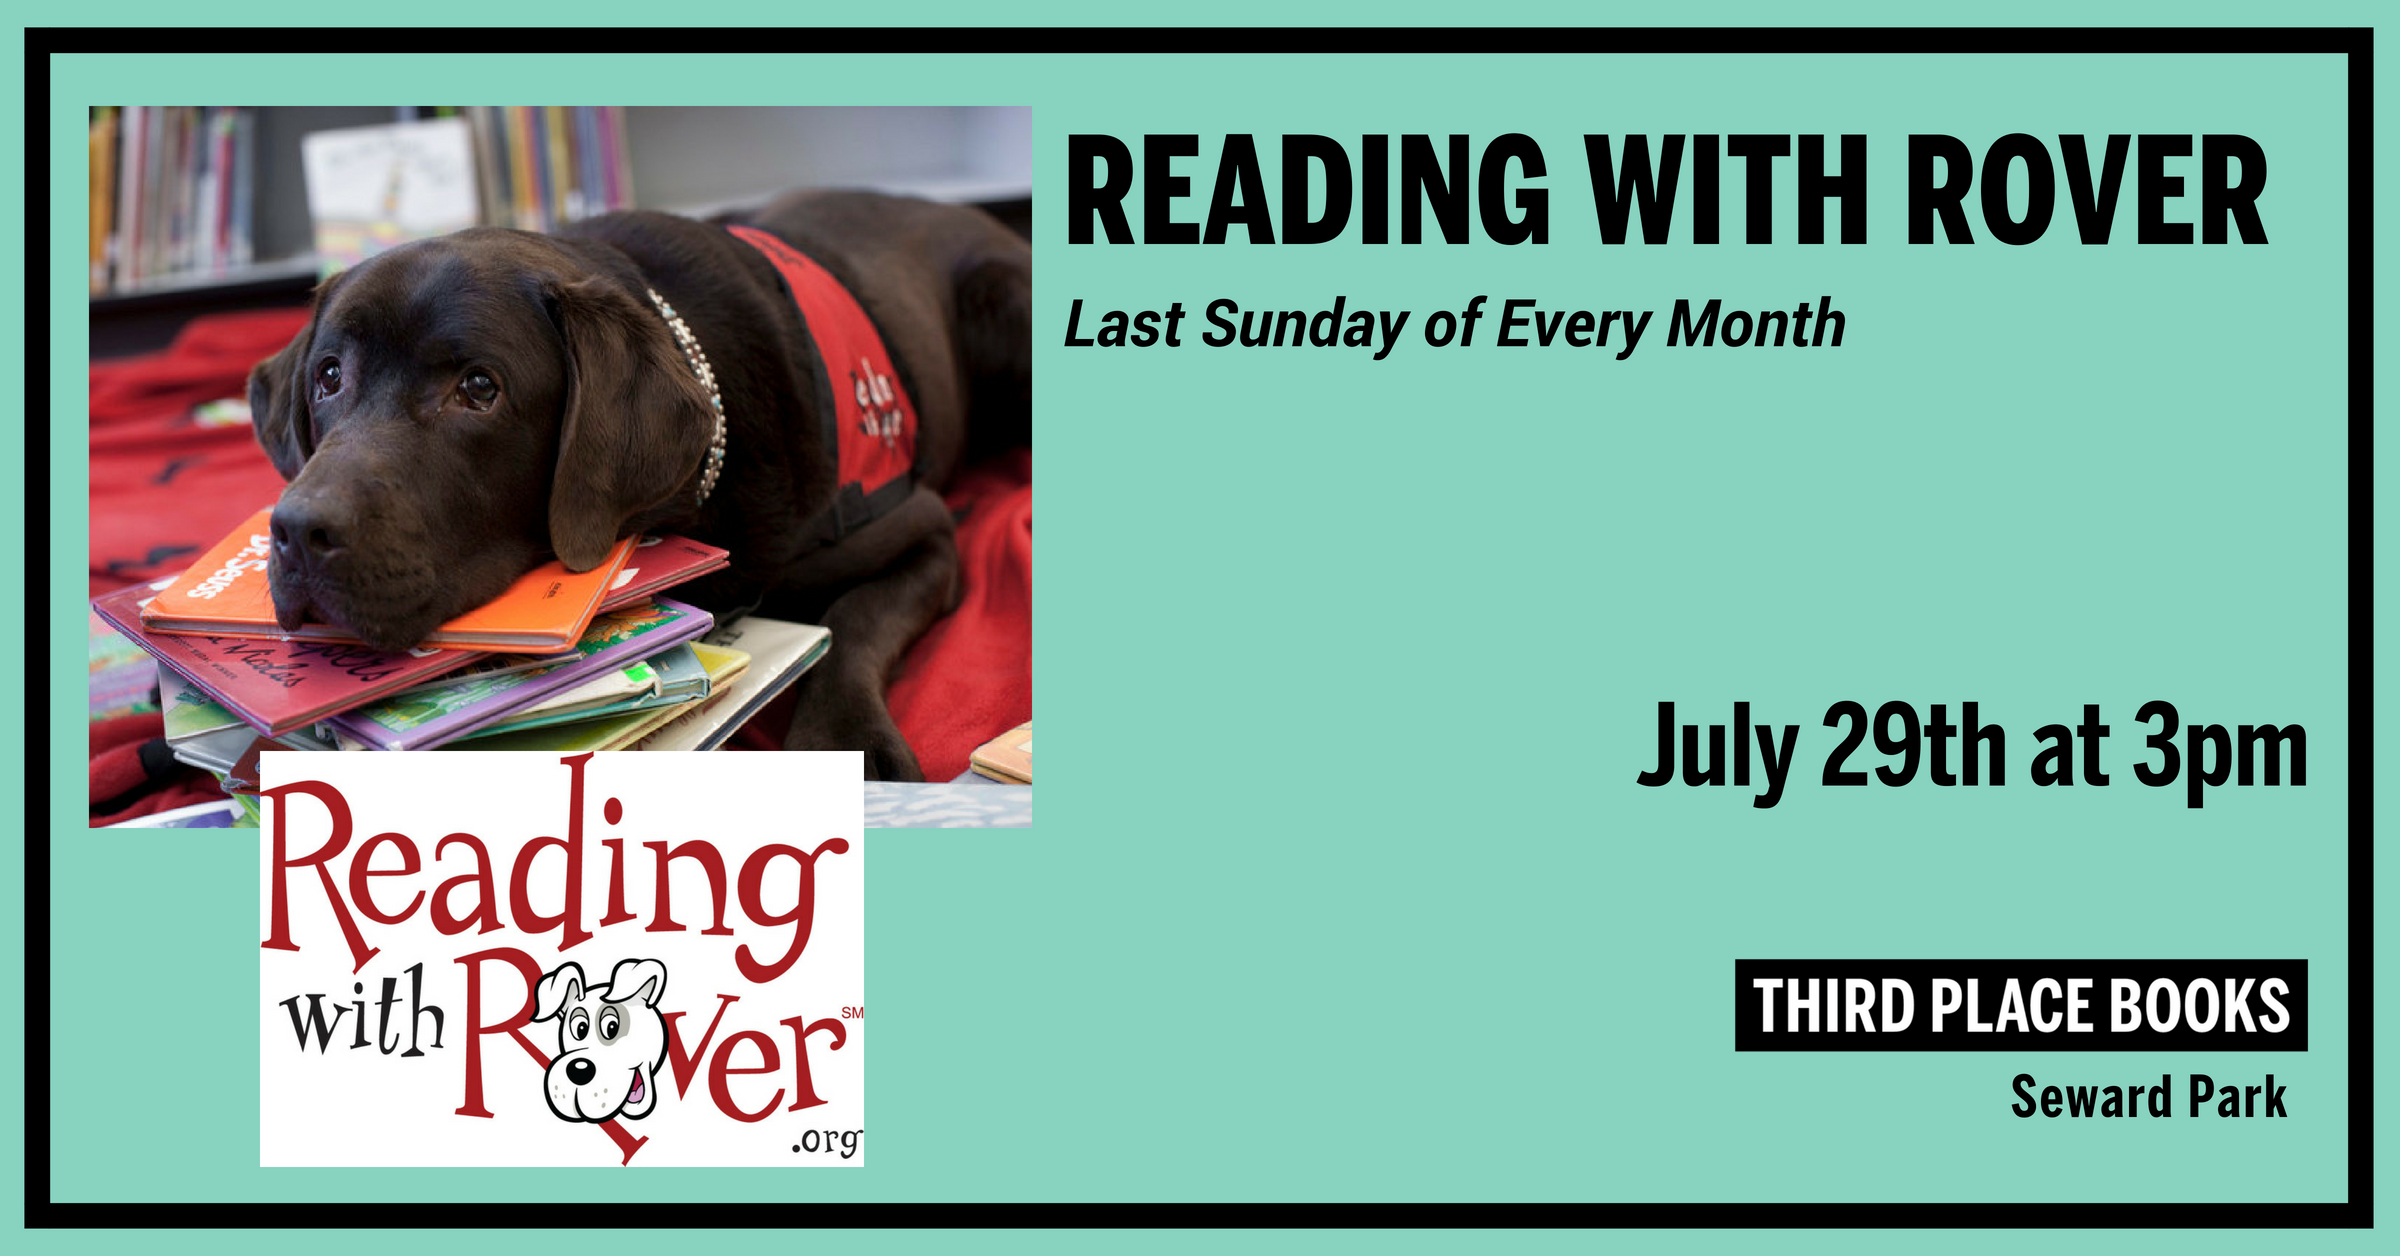 Reading With Rover! Sunday, July 29th at 3pm